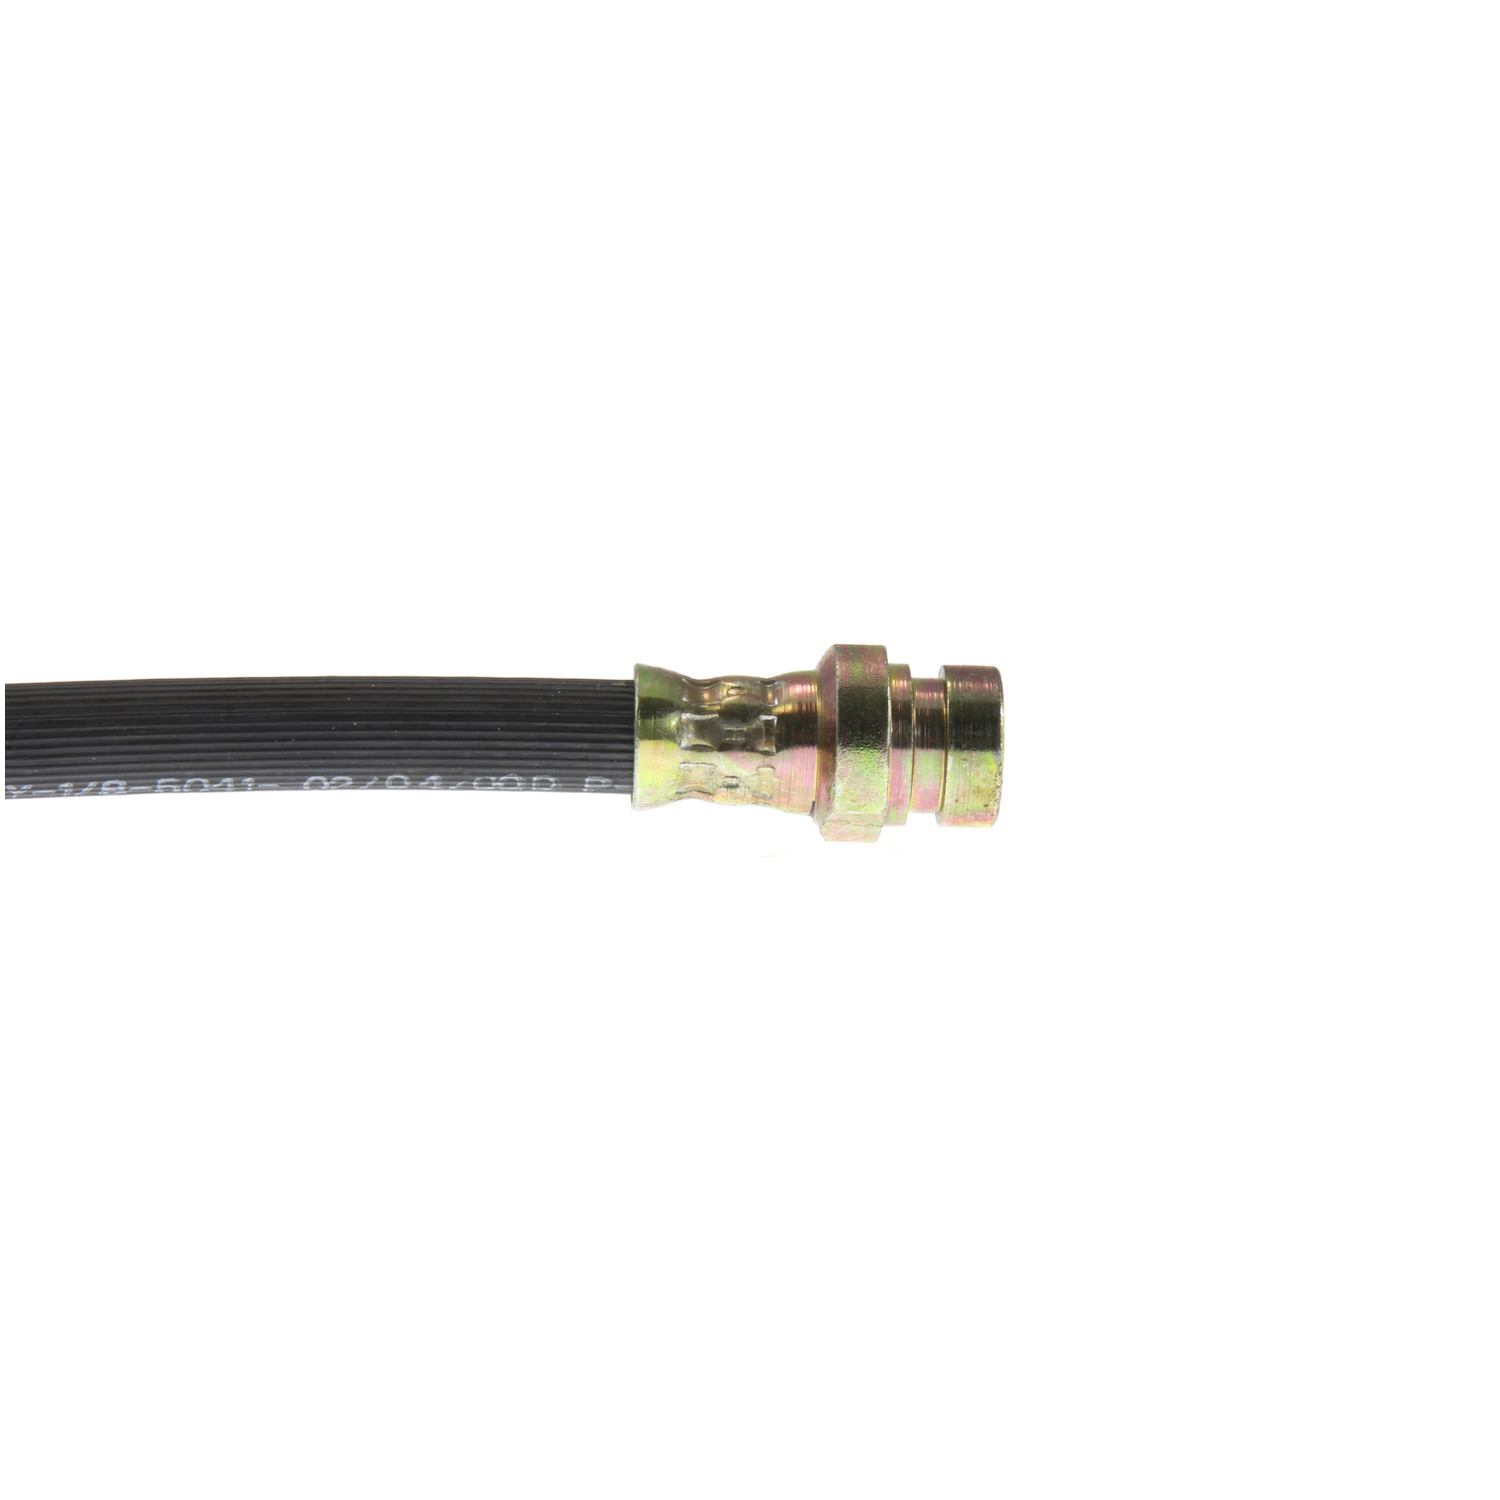 CENTRIC PARTS - Brake Hydraulic Hose (Front) - CEC 150.40009